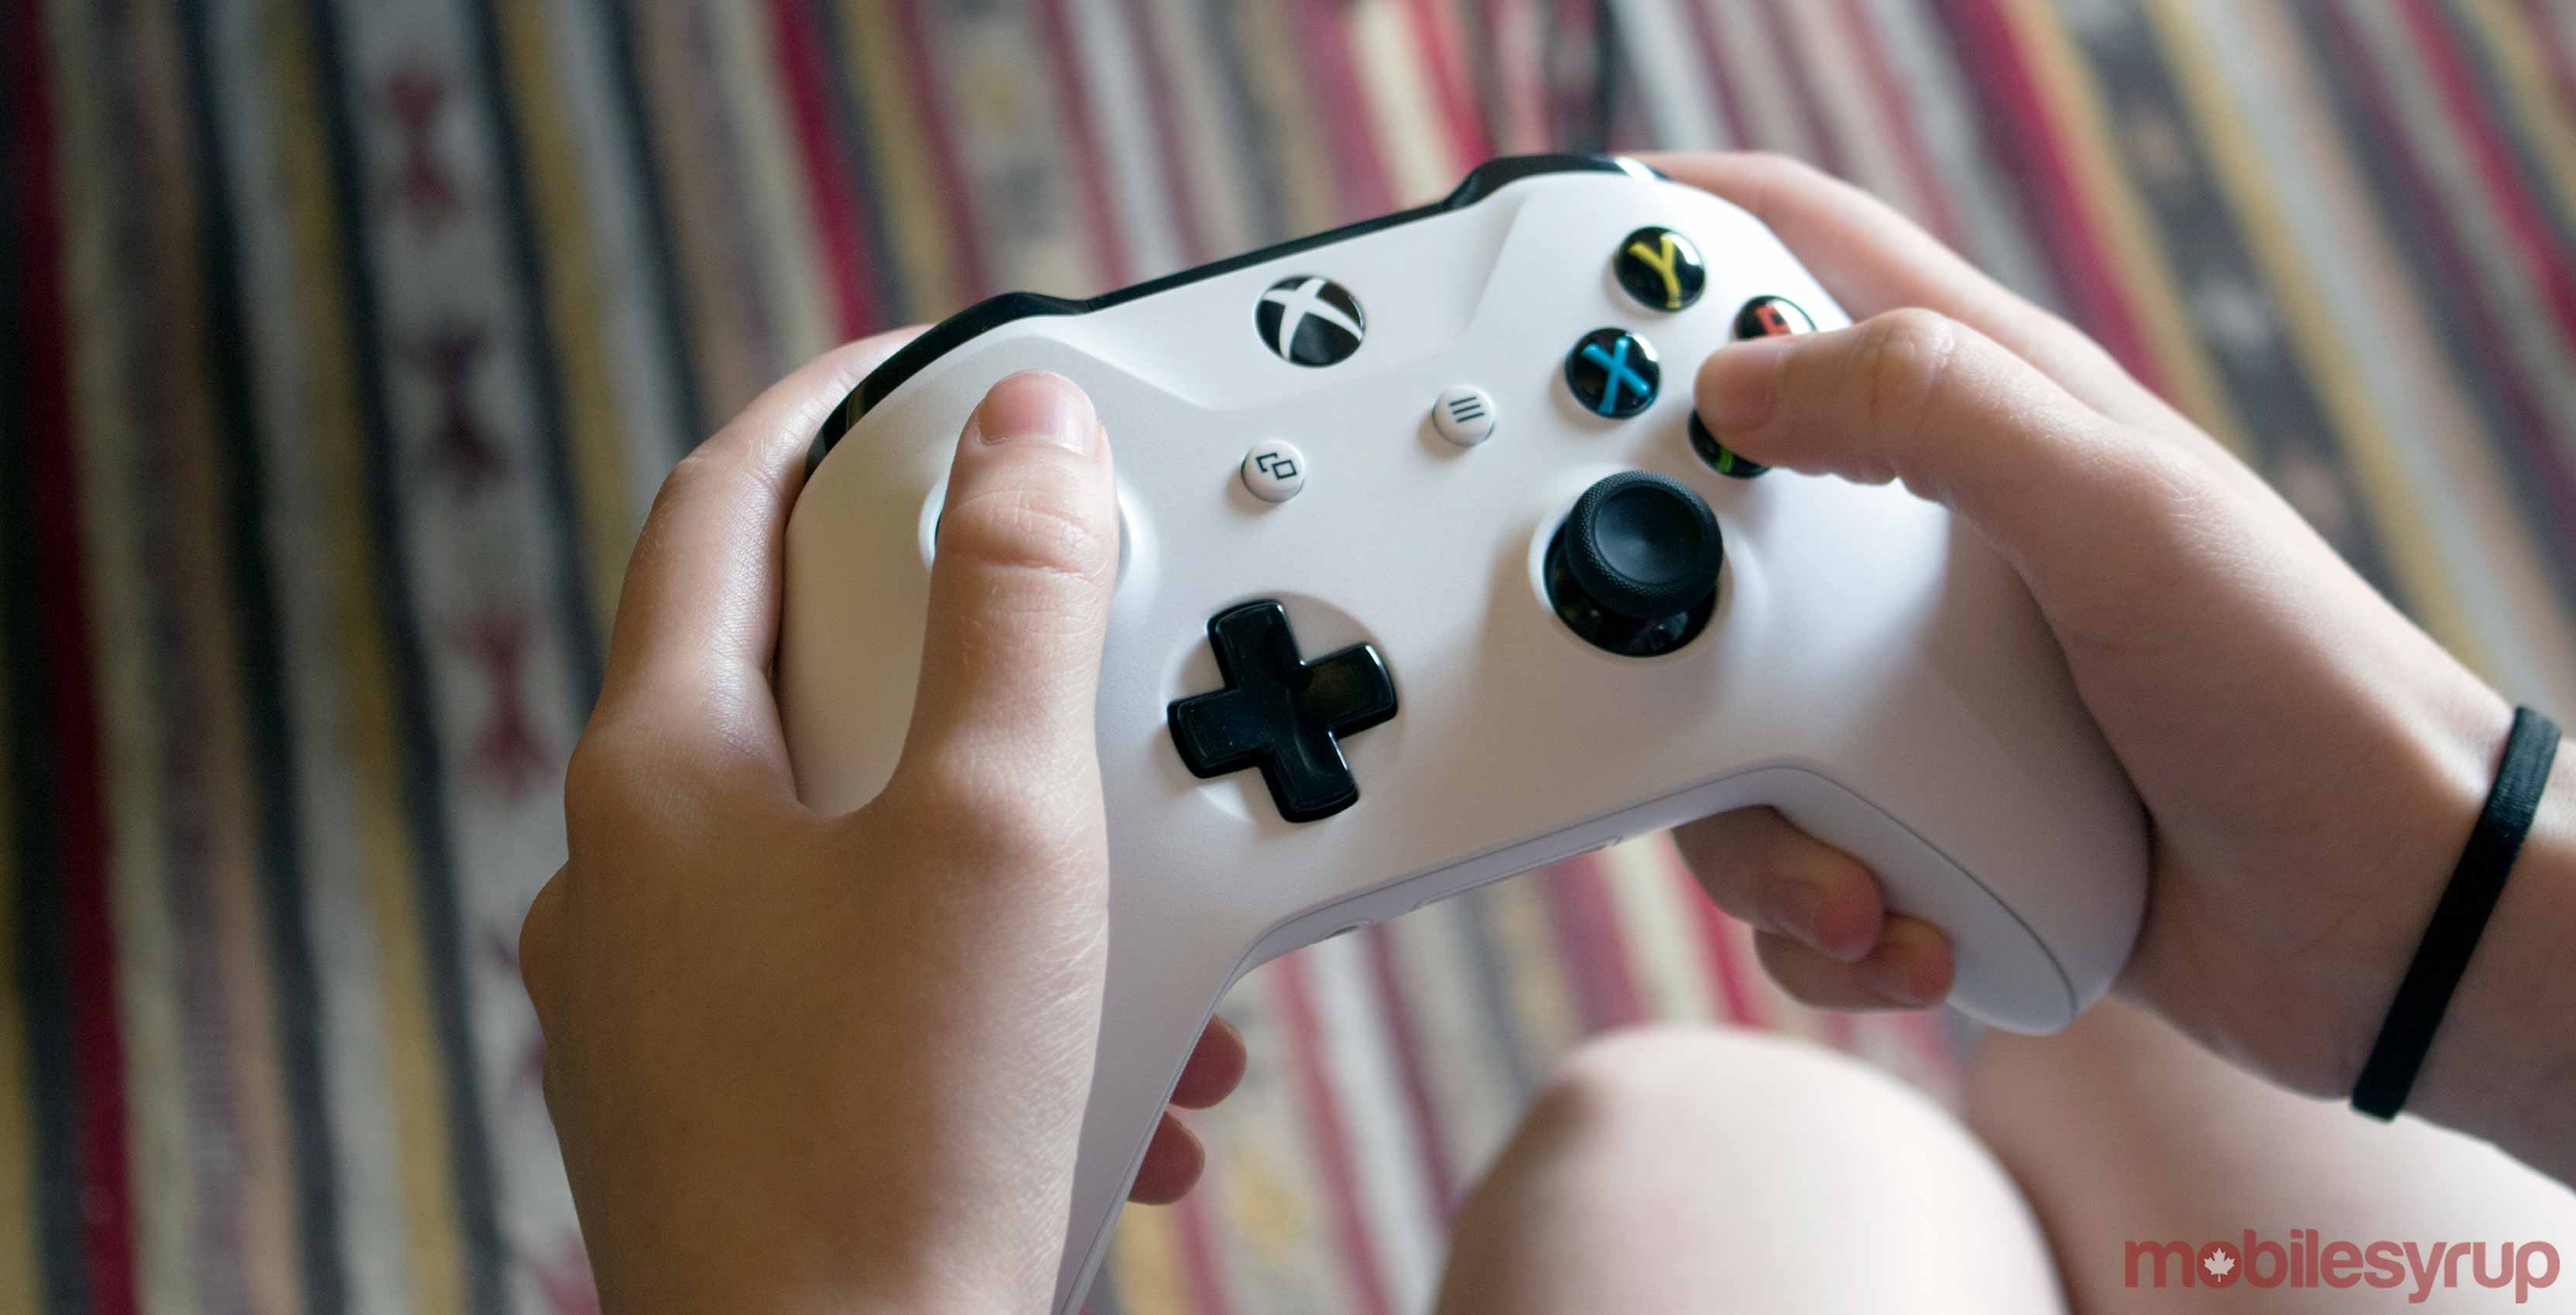 Xbox One white controller in hands